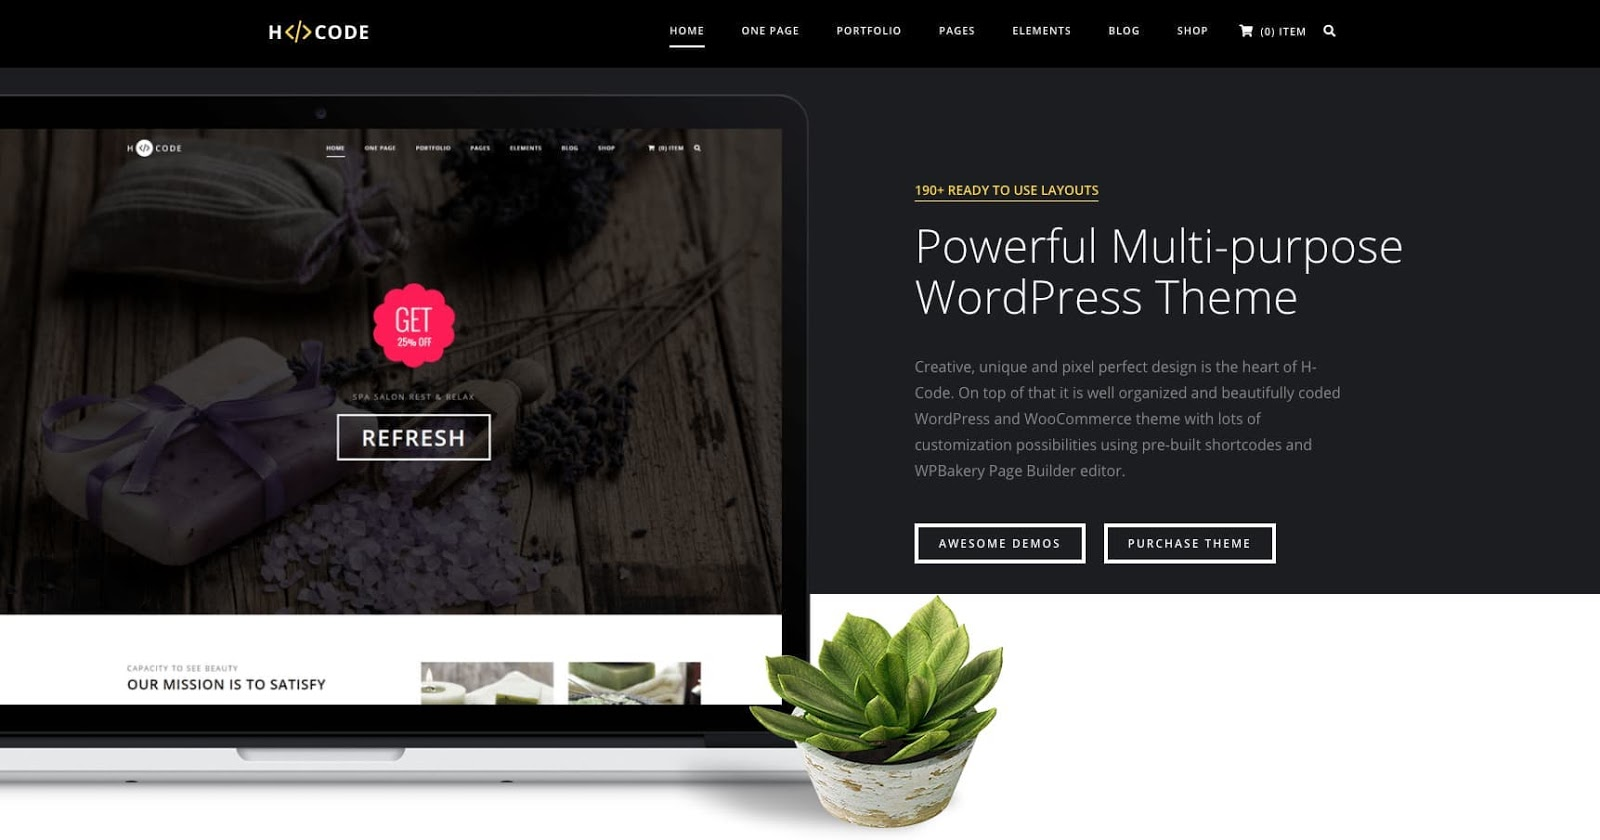 product page for the corporate WordPress theme H Code